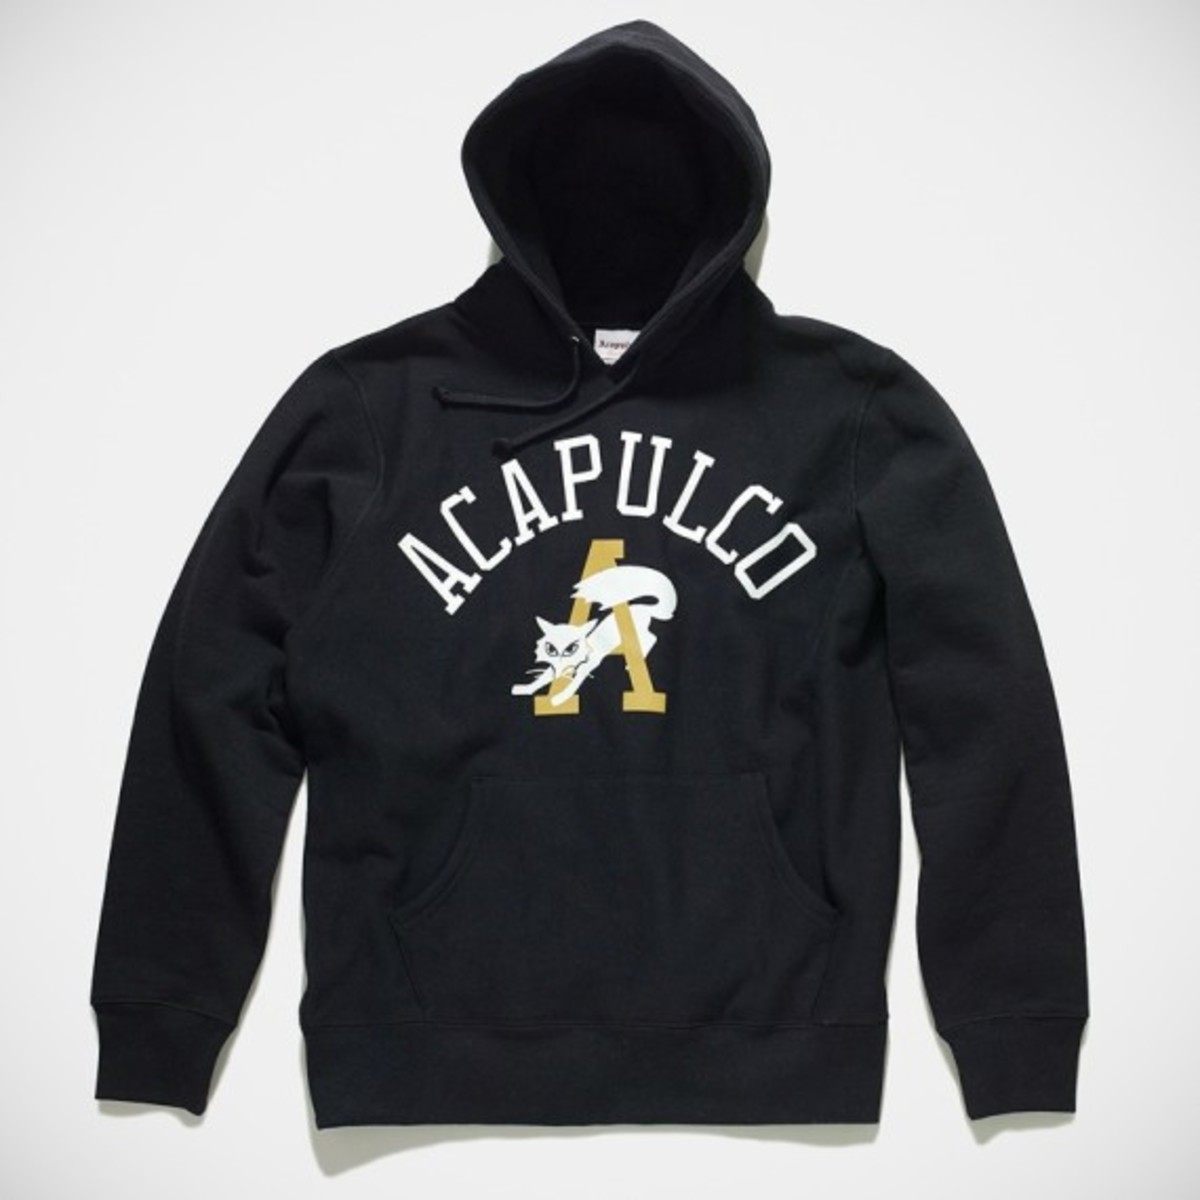 acapulco-gold-spring-2014-collection-delivery-1-23